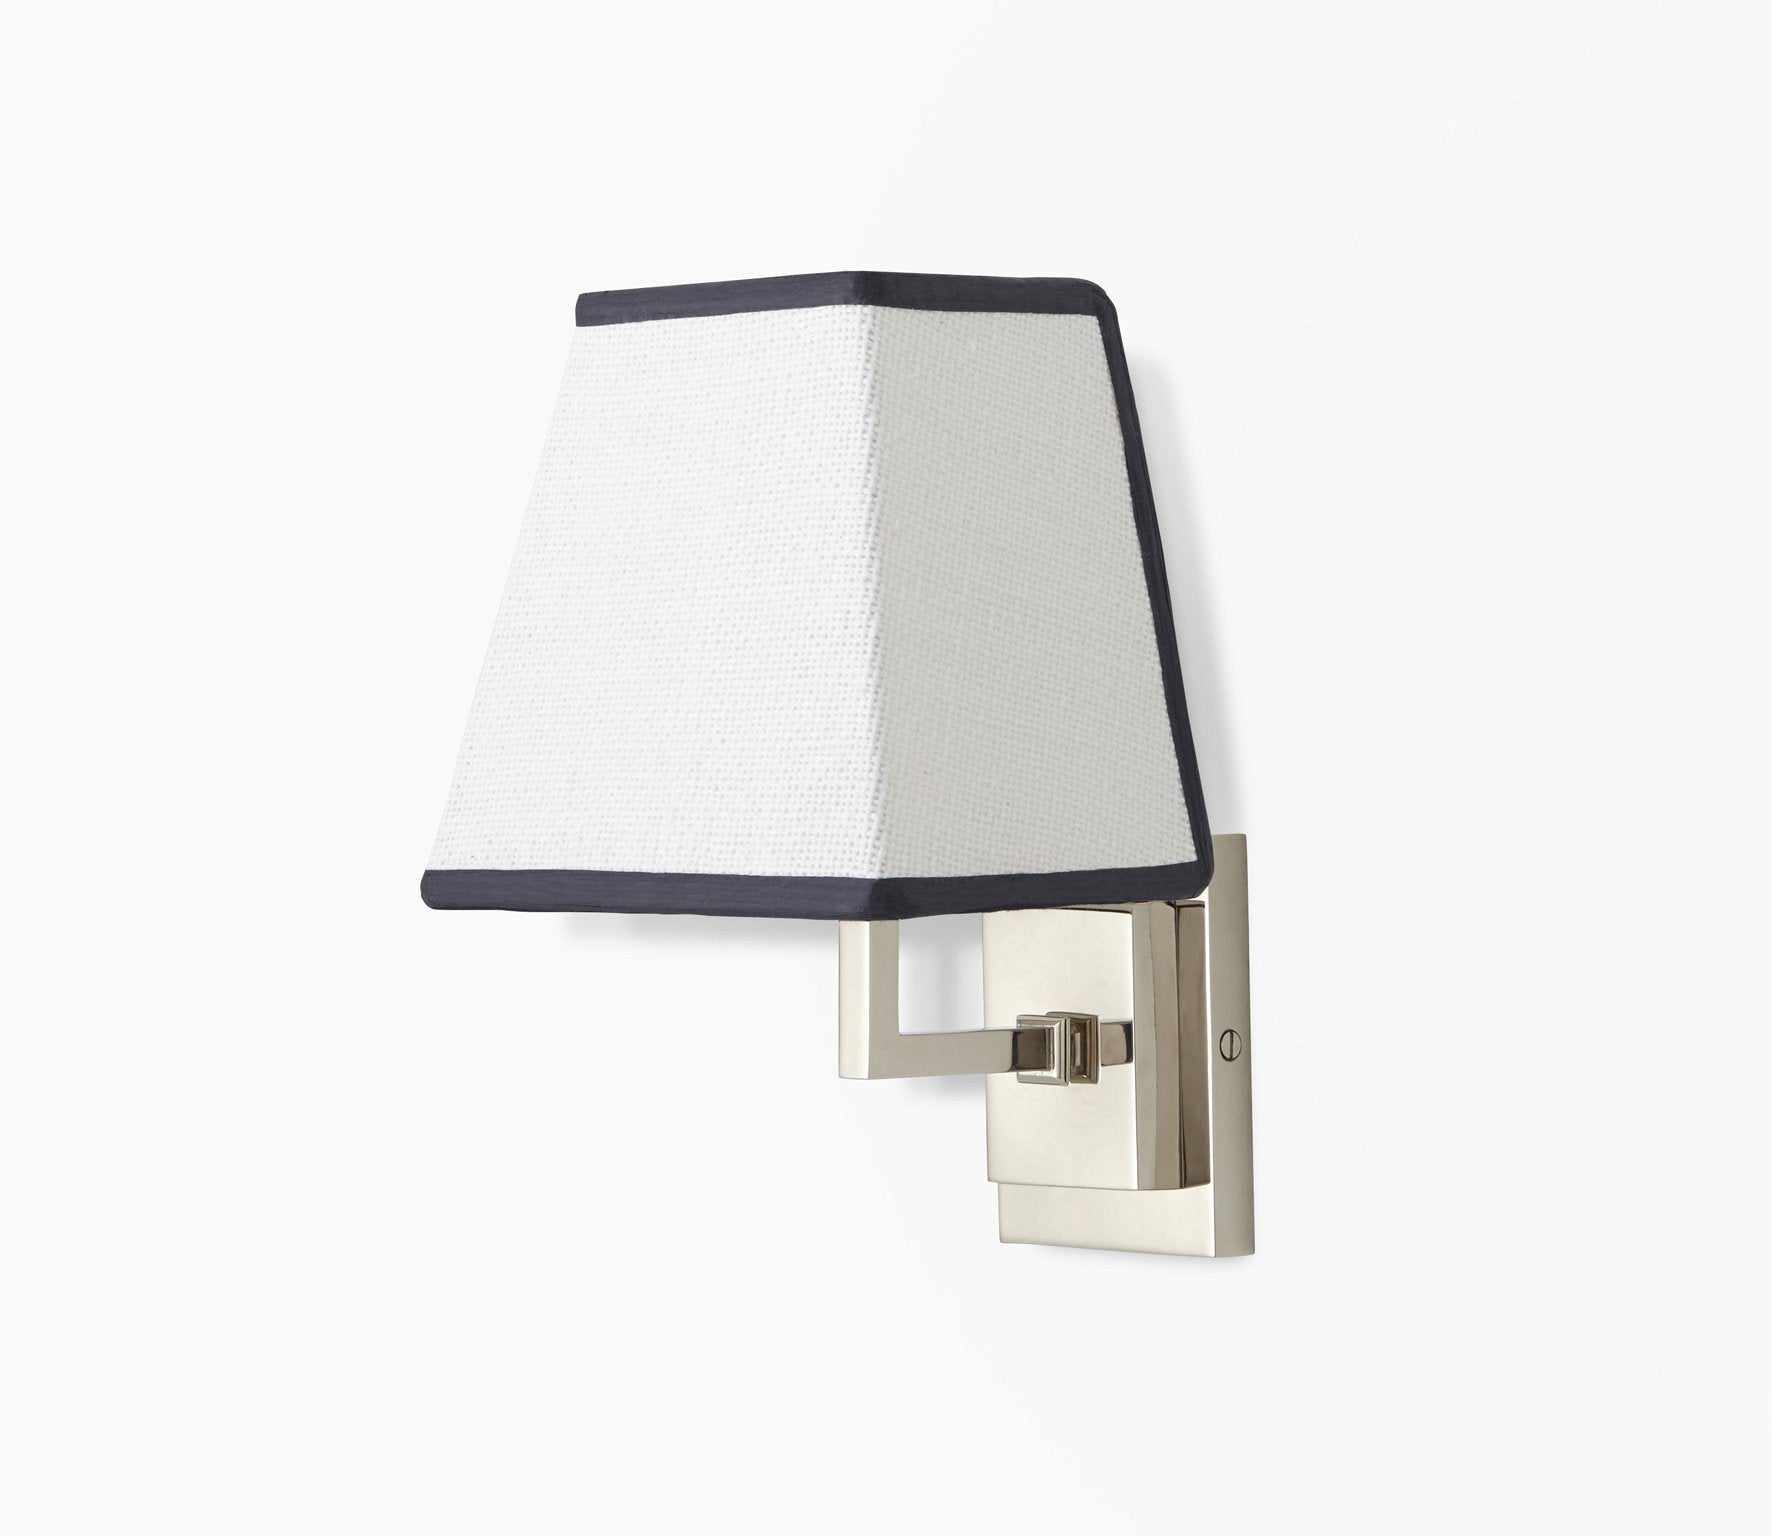 Parker Wall Light with Trapezoid Shade Product Image 2